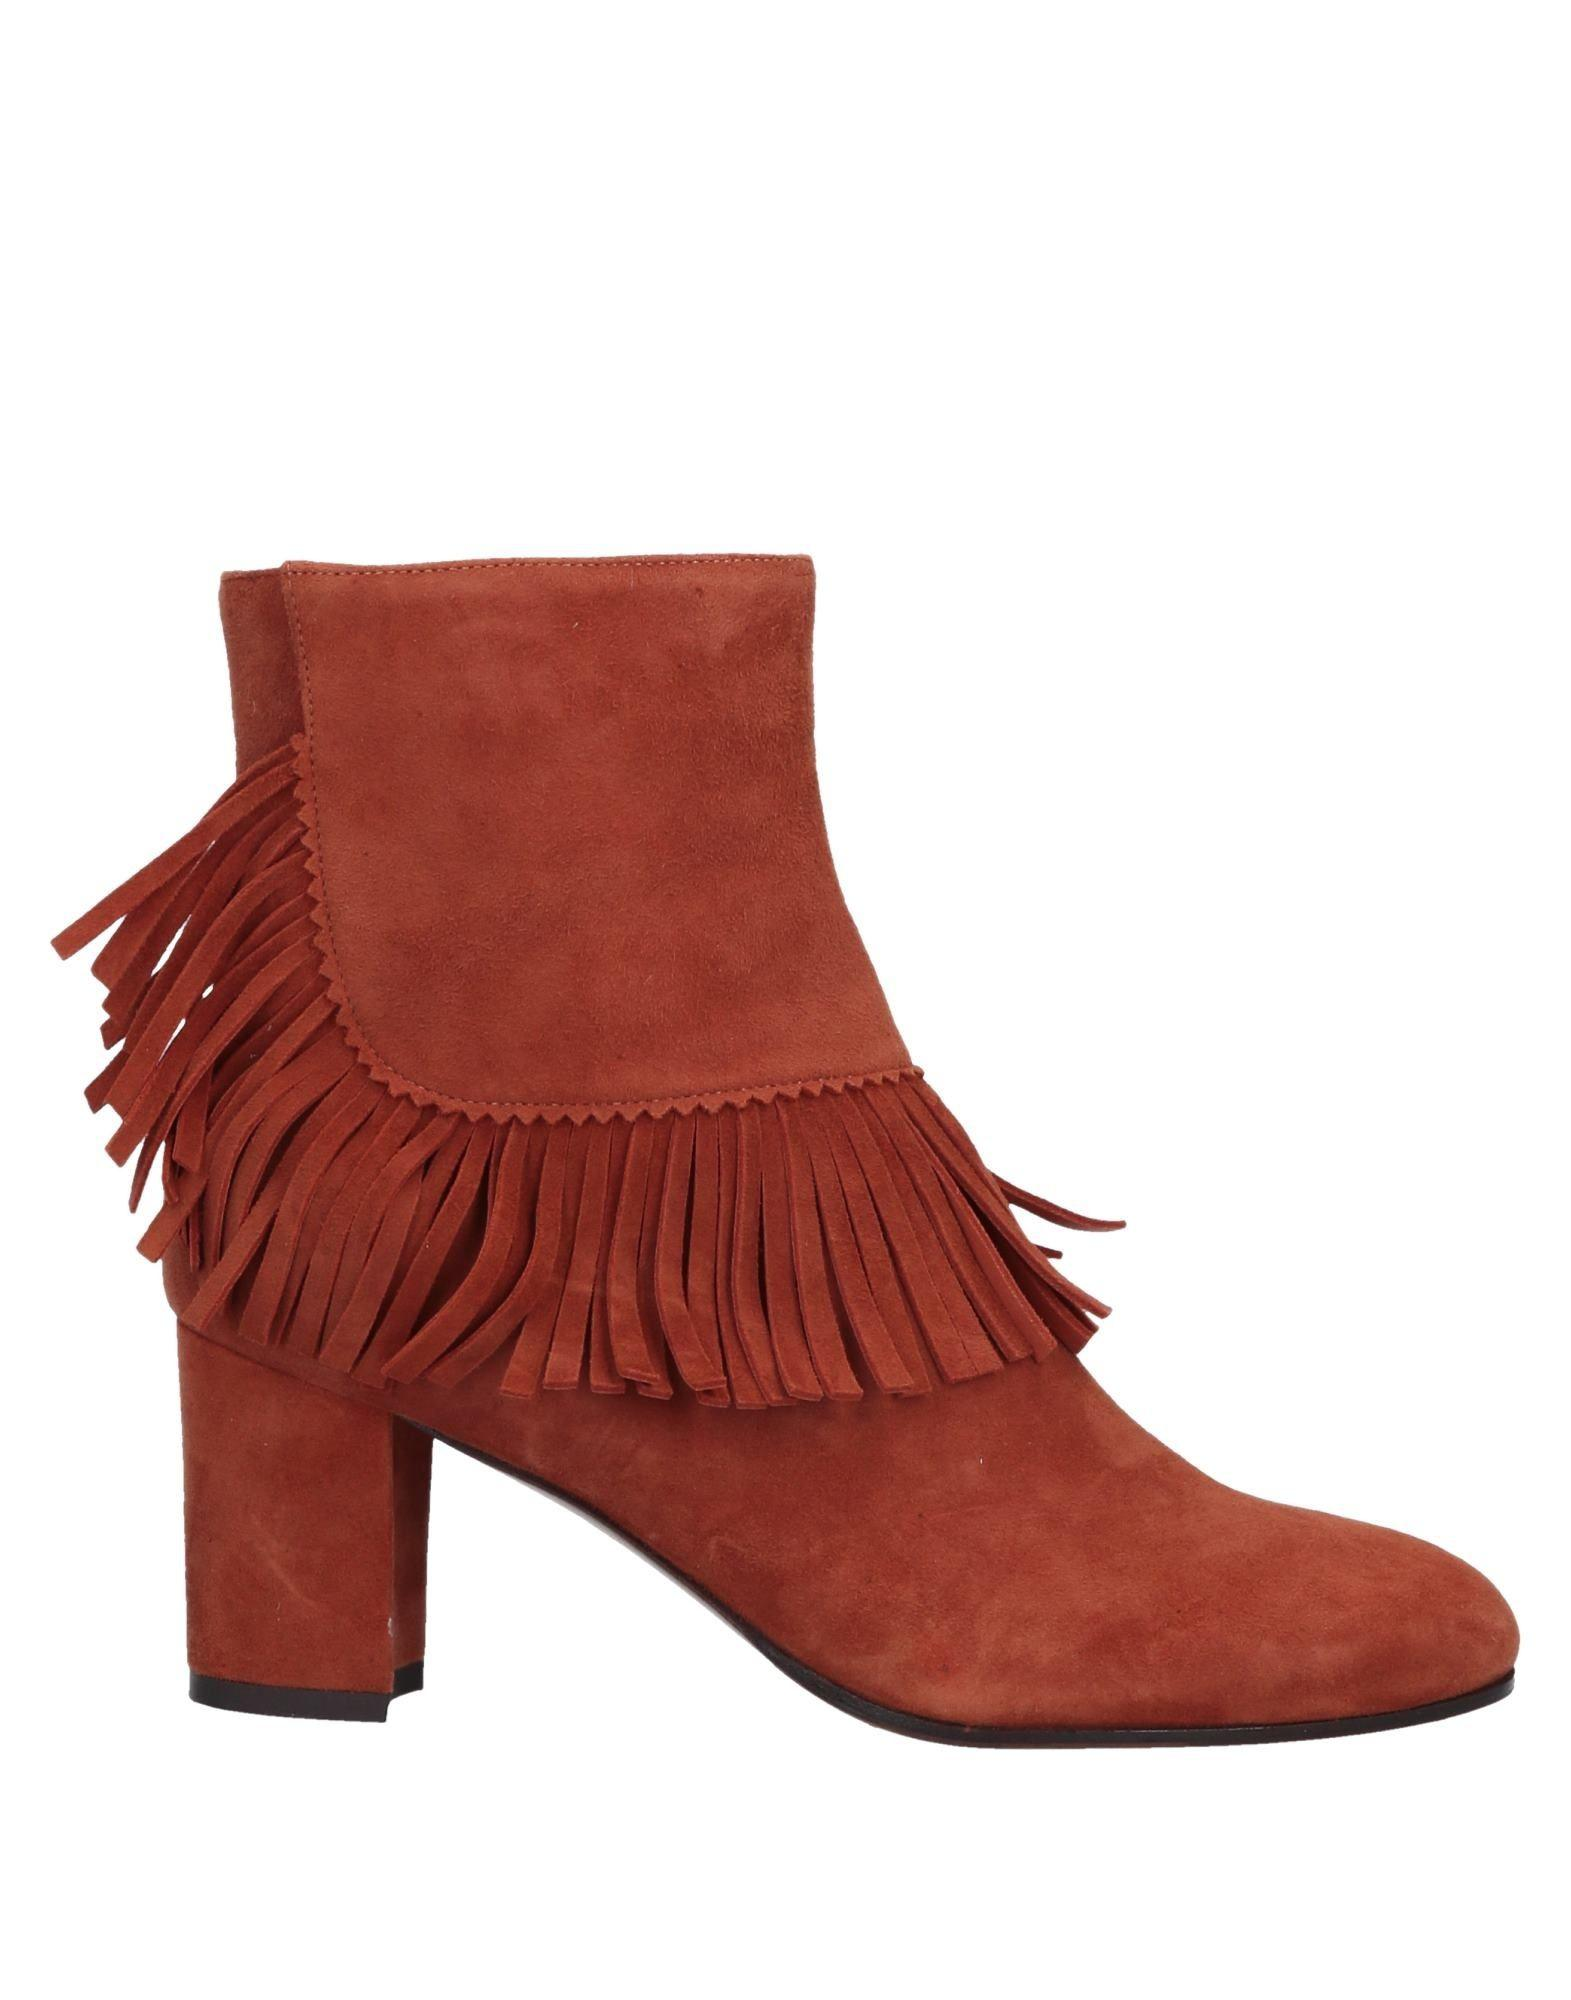 2e54b2f903f1 Lyst - L Autre Chose Ankle Boots in Red